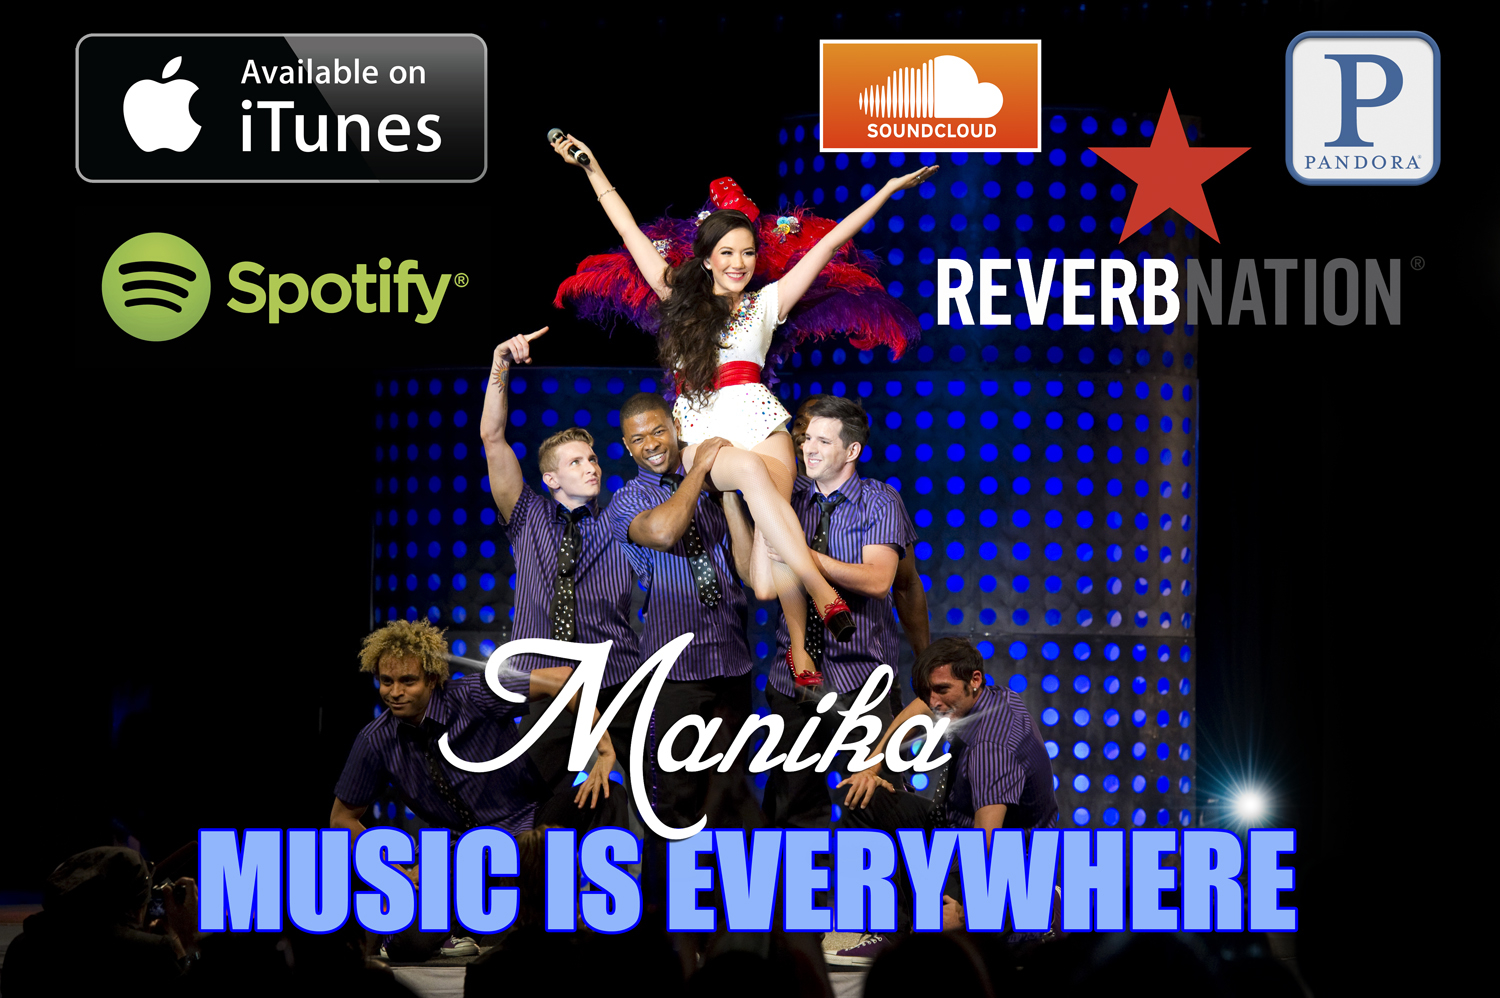 Follow Manika Music Everywhere!